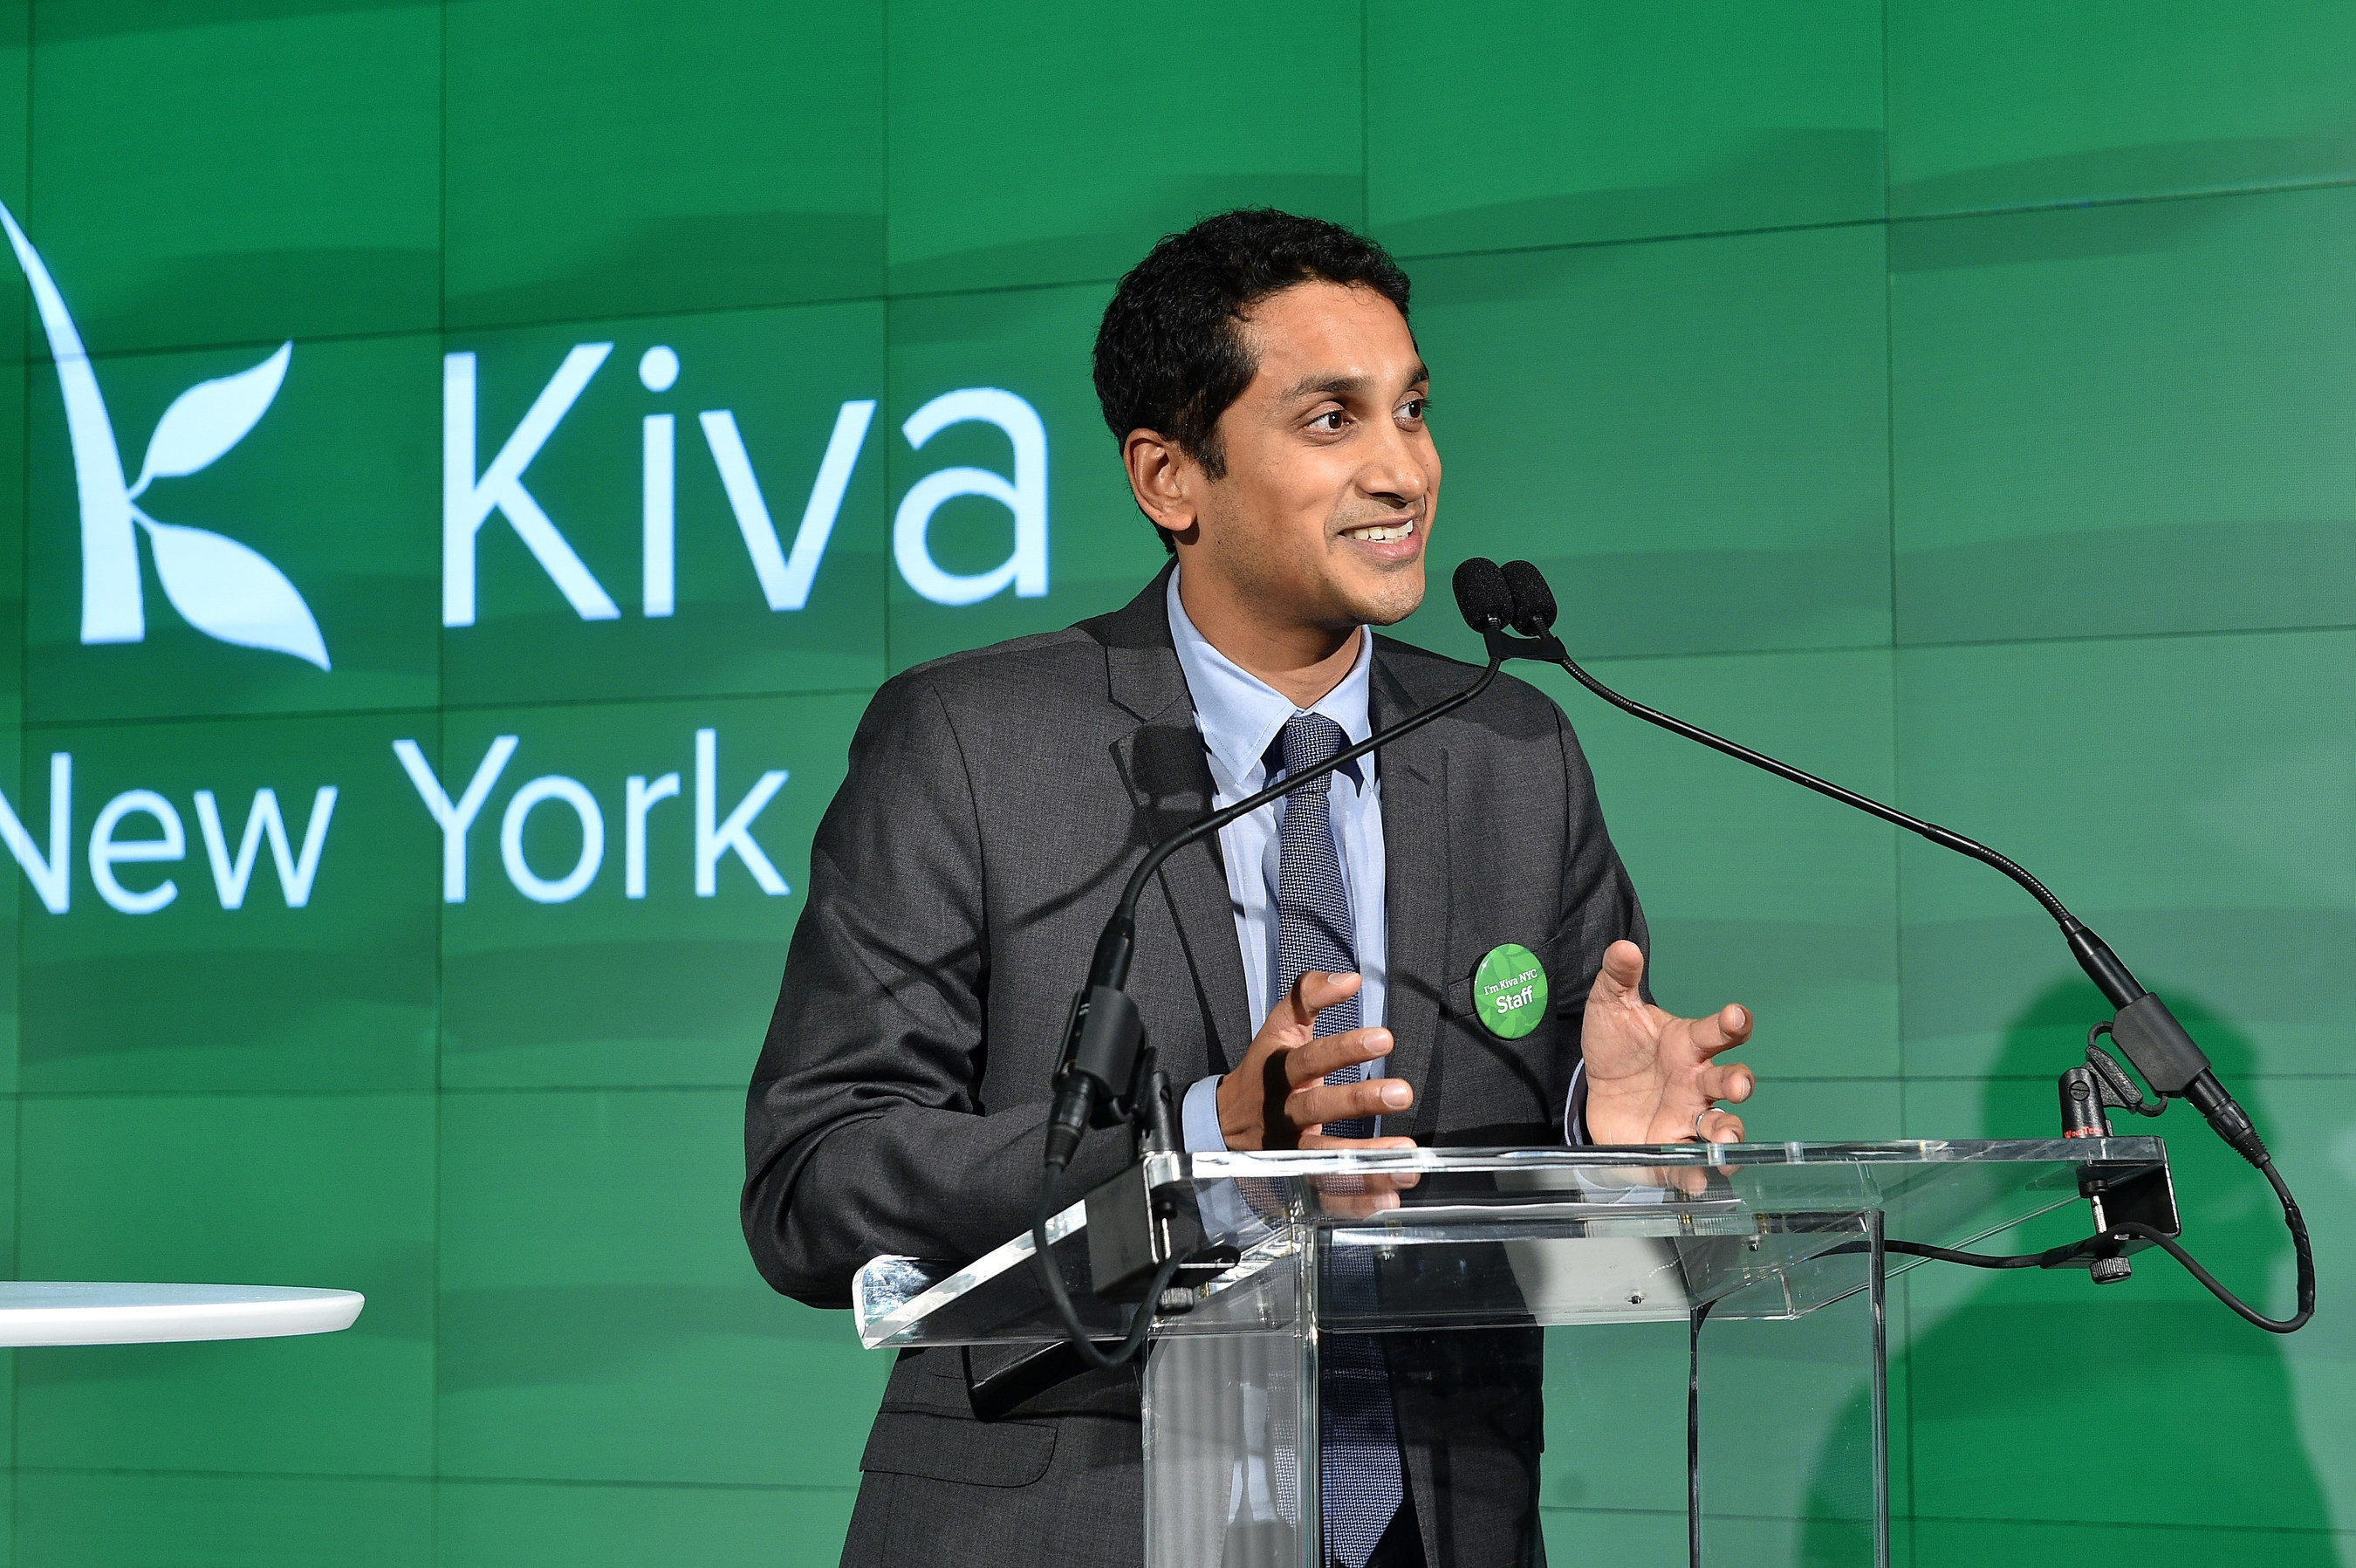 Kiva President and Co-Founder Premal Shah addresses the audience at the Kiva NYC Launch event in New York City on December 9, 2015. (Photo by Larry Busacca/Getty Images for Kiva)